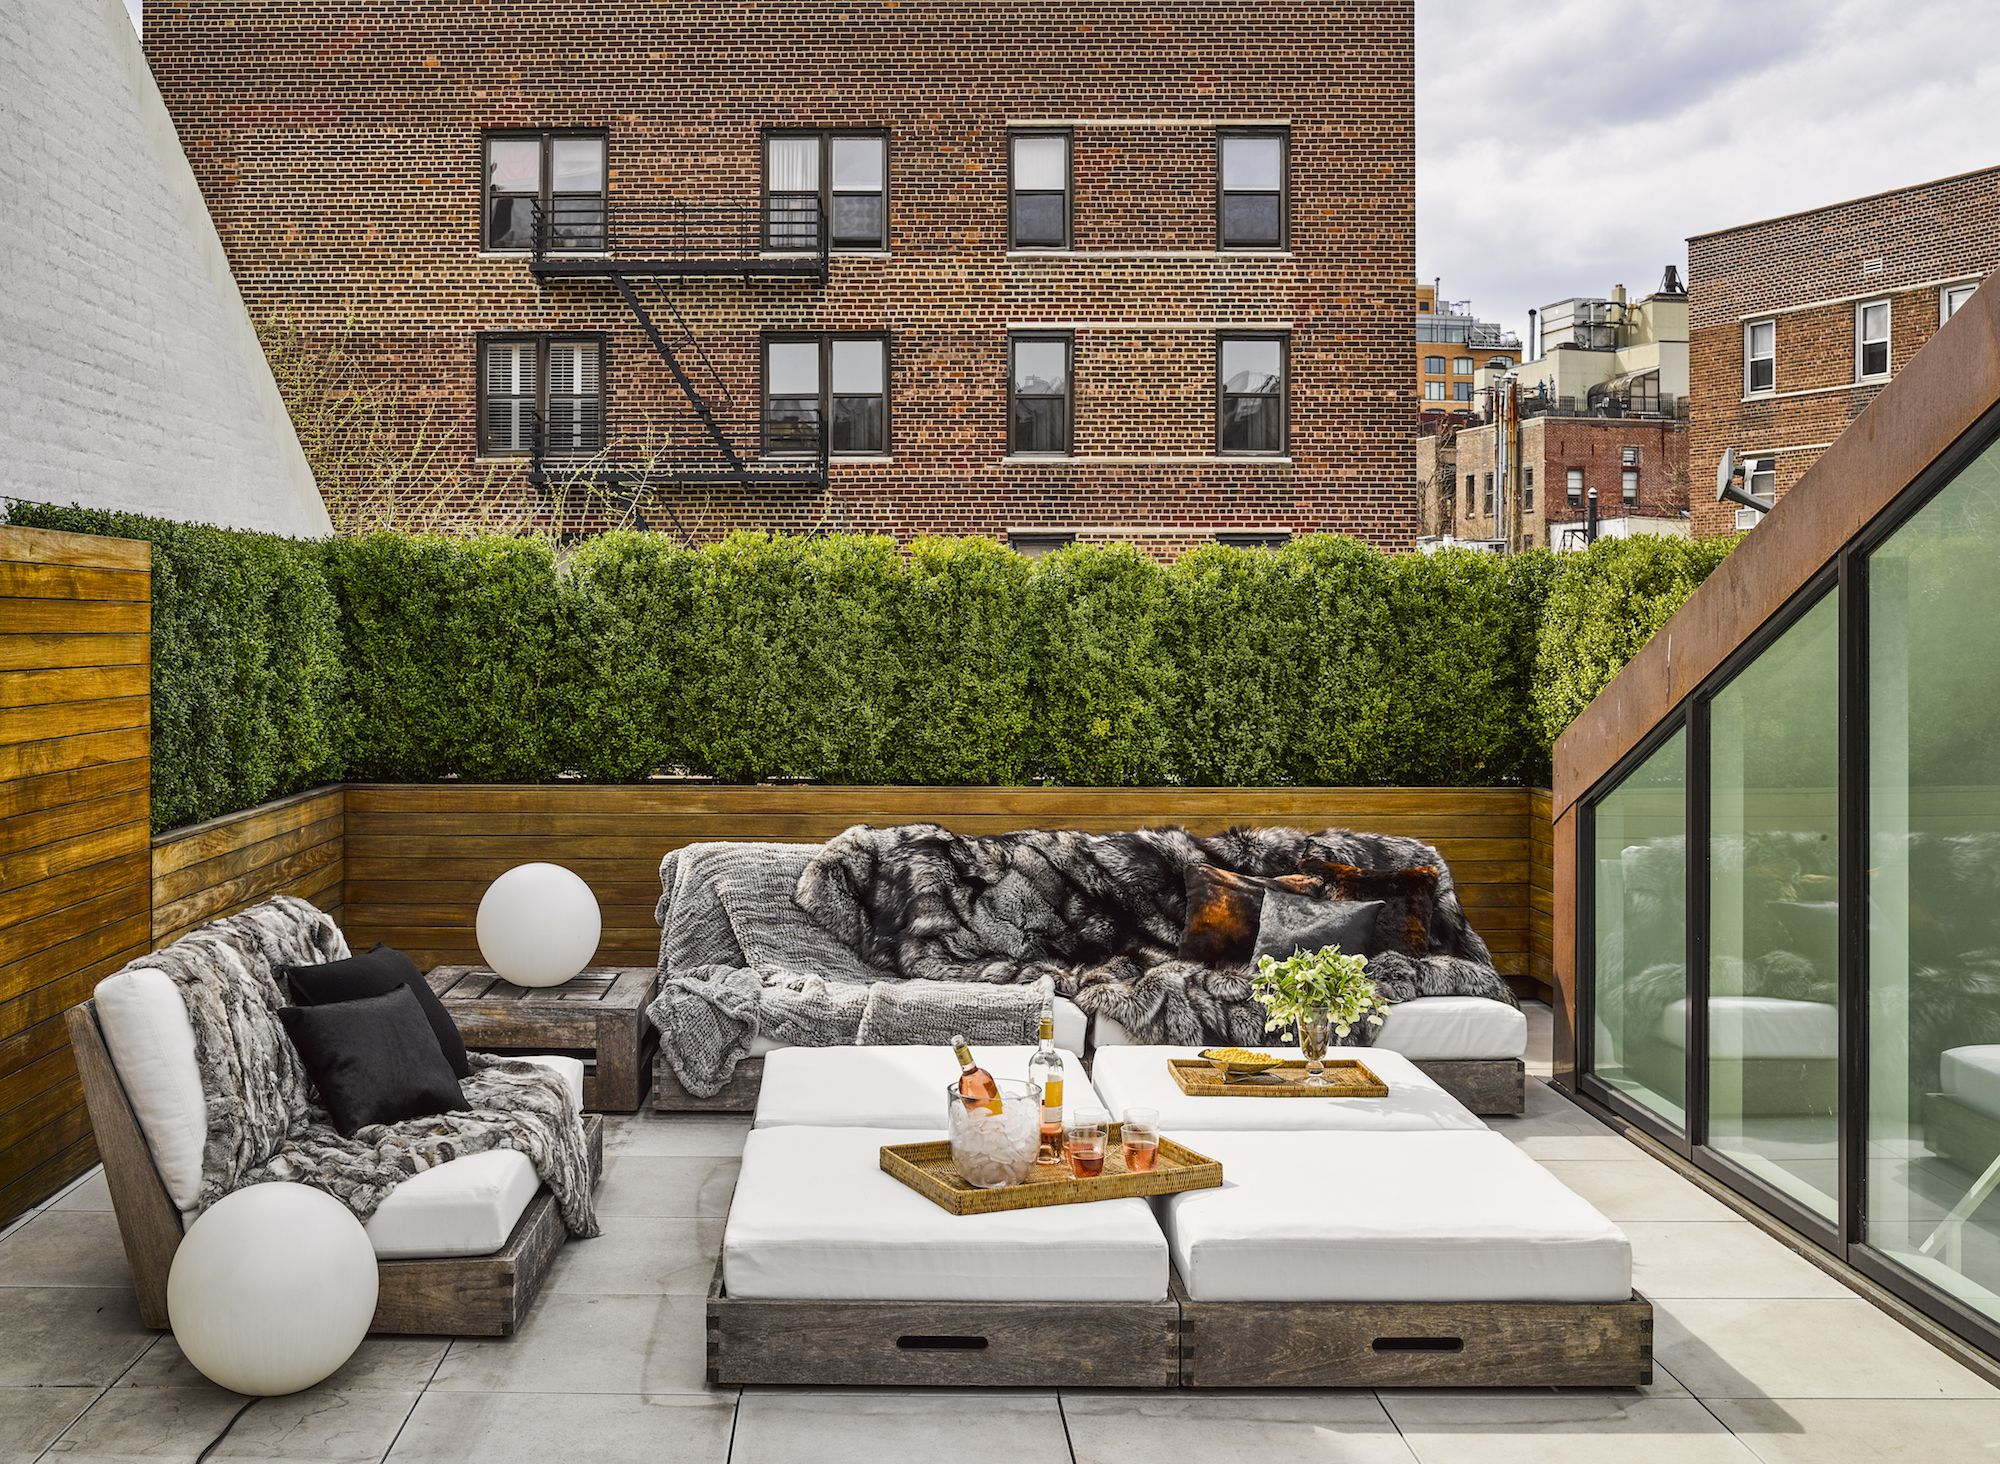 patio ideas a small patio is, ironically, the perfect place for big ideas. OOZDQCT